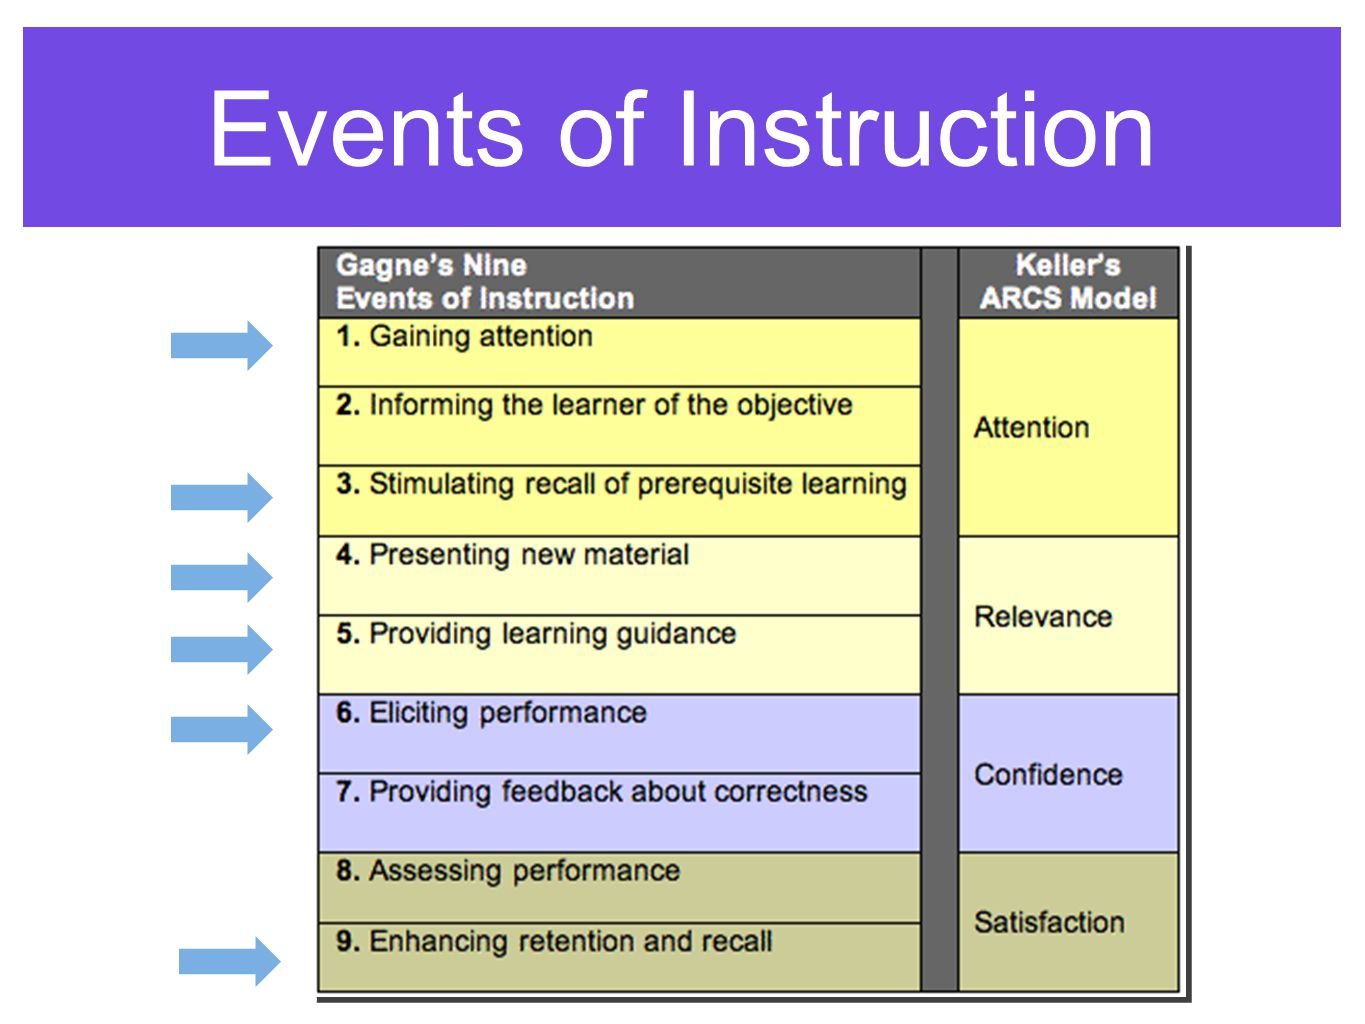 Events of Instruction